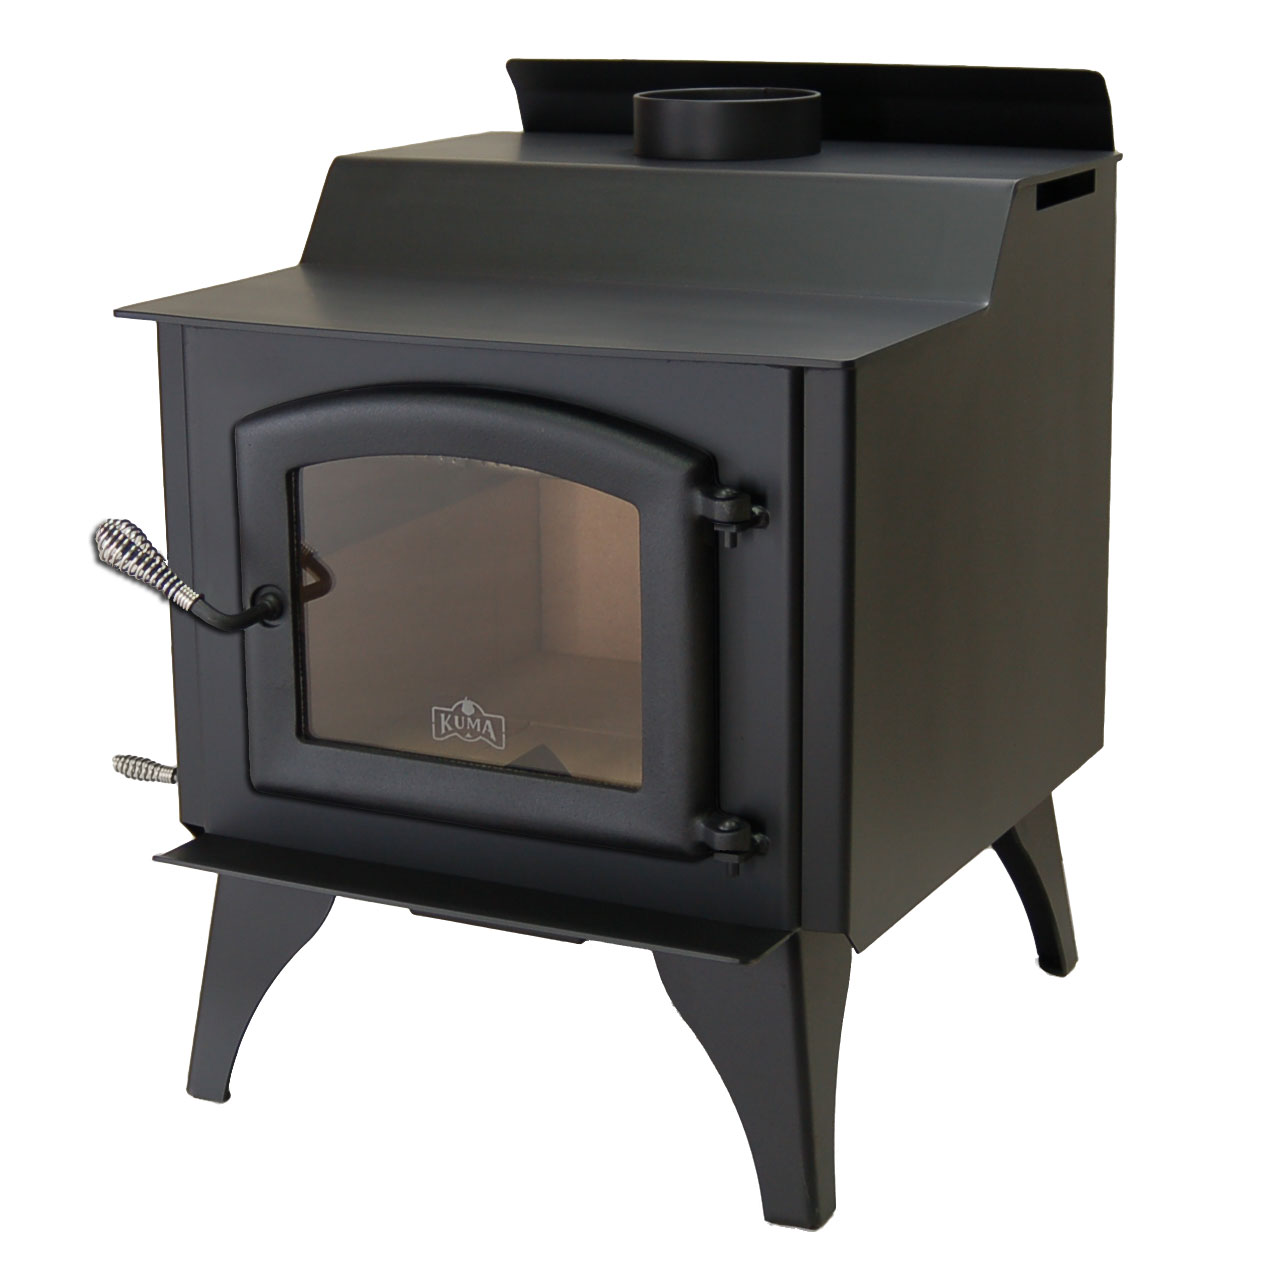 Kuma Wood Classic wood stove with steel legs and black door